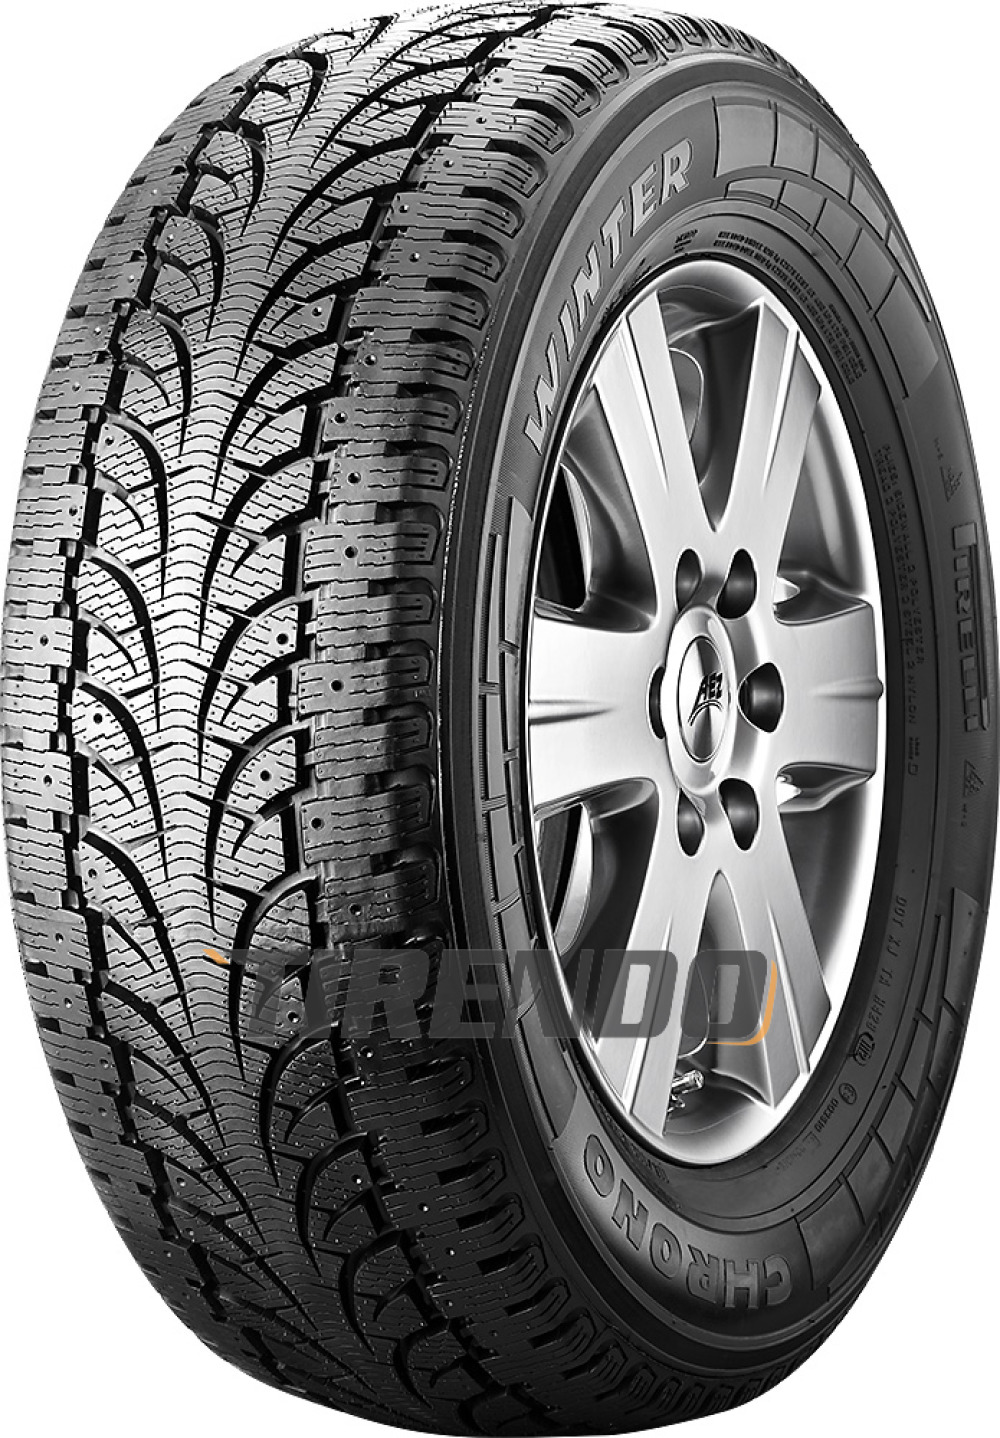 Pirelli Chrono Winter ( 205/70 R15C 106/104R )